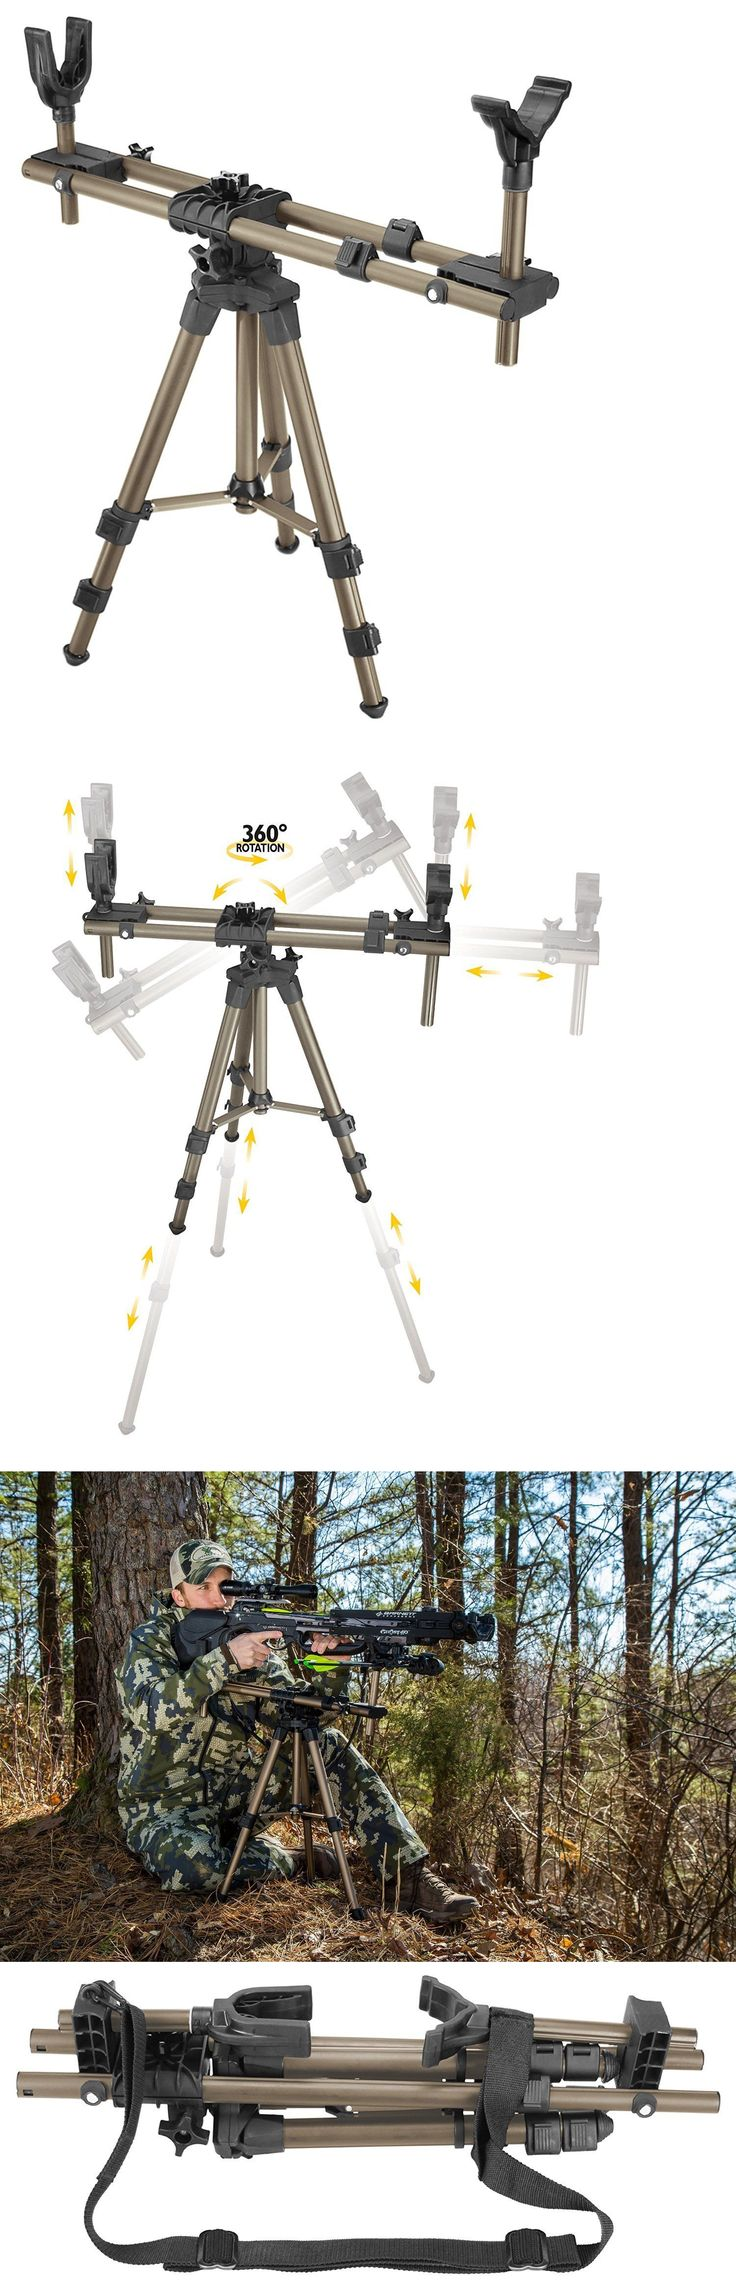 Benches and Rests 177887: Hunting Tripod Shooting Rifle Rest Gear Scope Hunt Game Gun Stand Crossbow Bipod -> BUY IT NOW ONLY: $107.04 on eBay! http://riflescopescenter.com/category/hawke-riflescope-reviews/